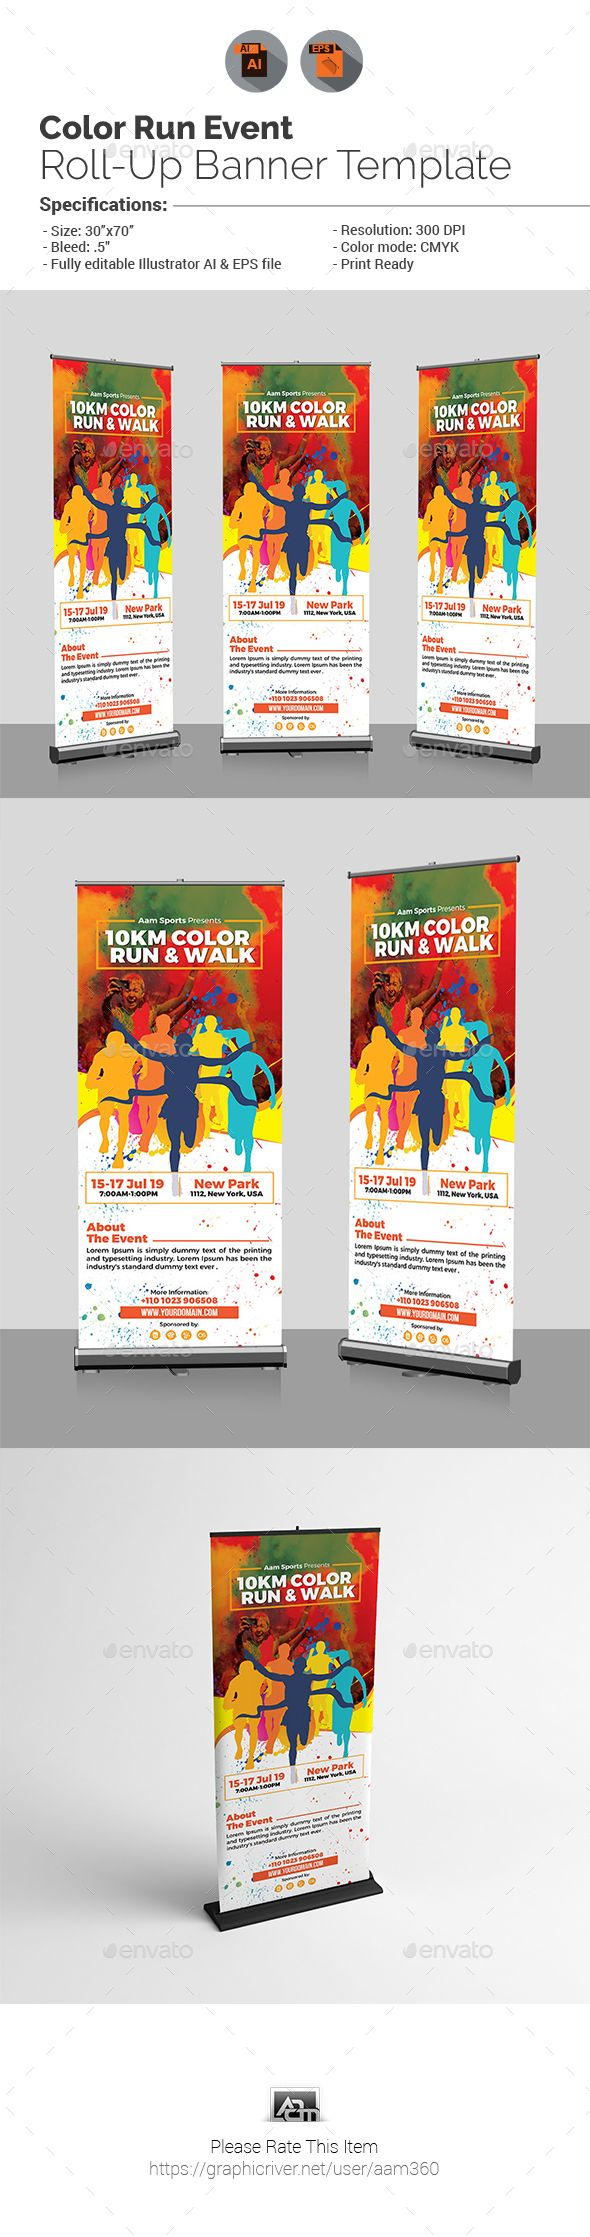 Color Run Event #Roll-Up #Banner - Events #Flyers Download here: https://graphicriver.net/item/color-run-event-rollup-banner/19375663?ref=alena994